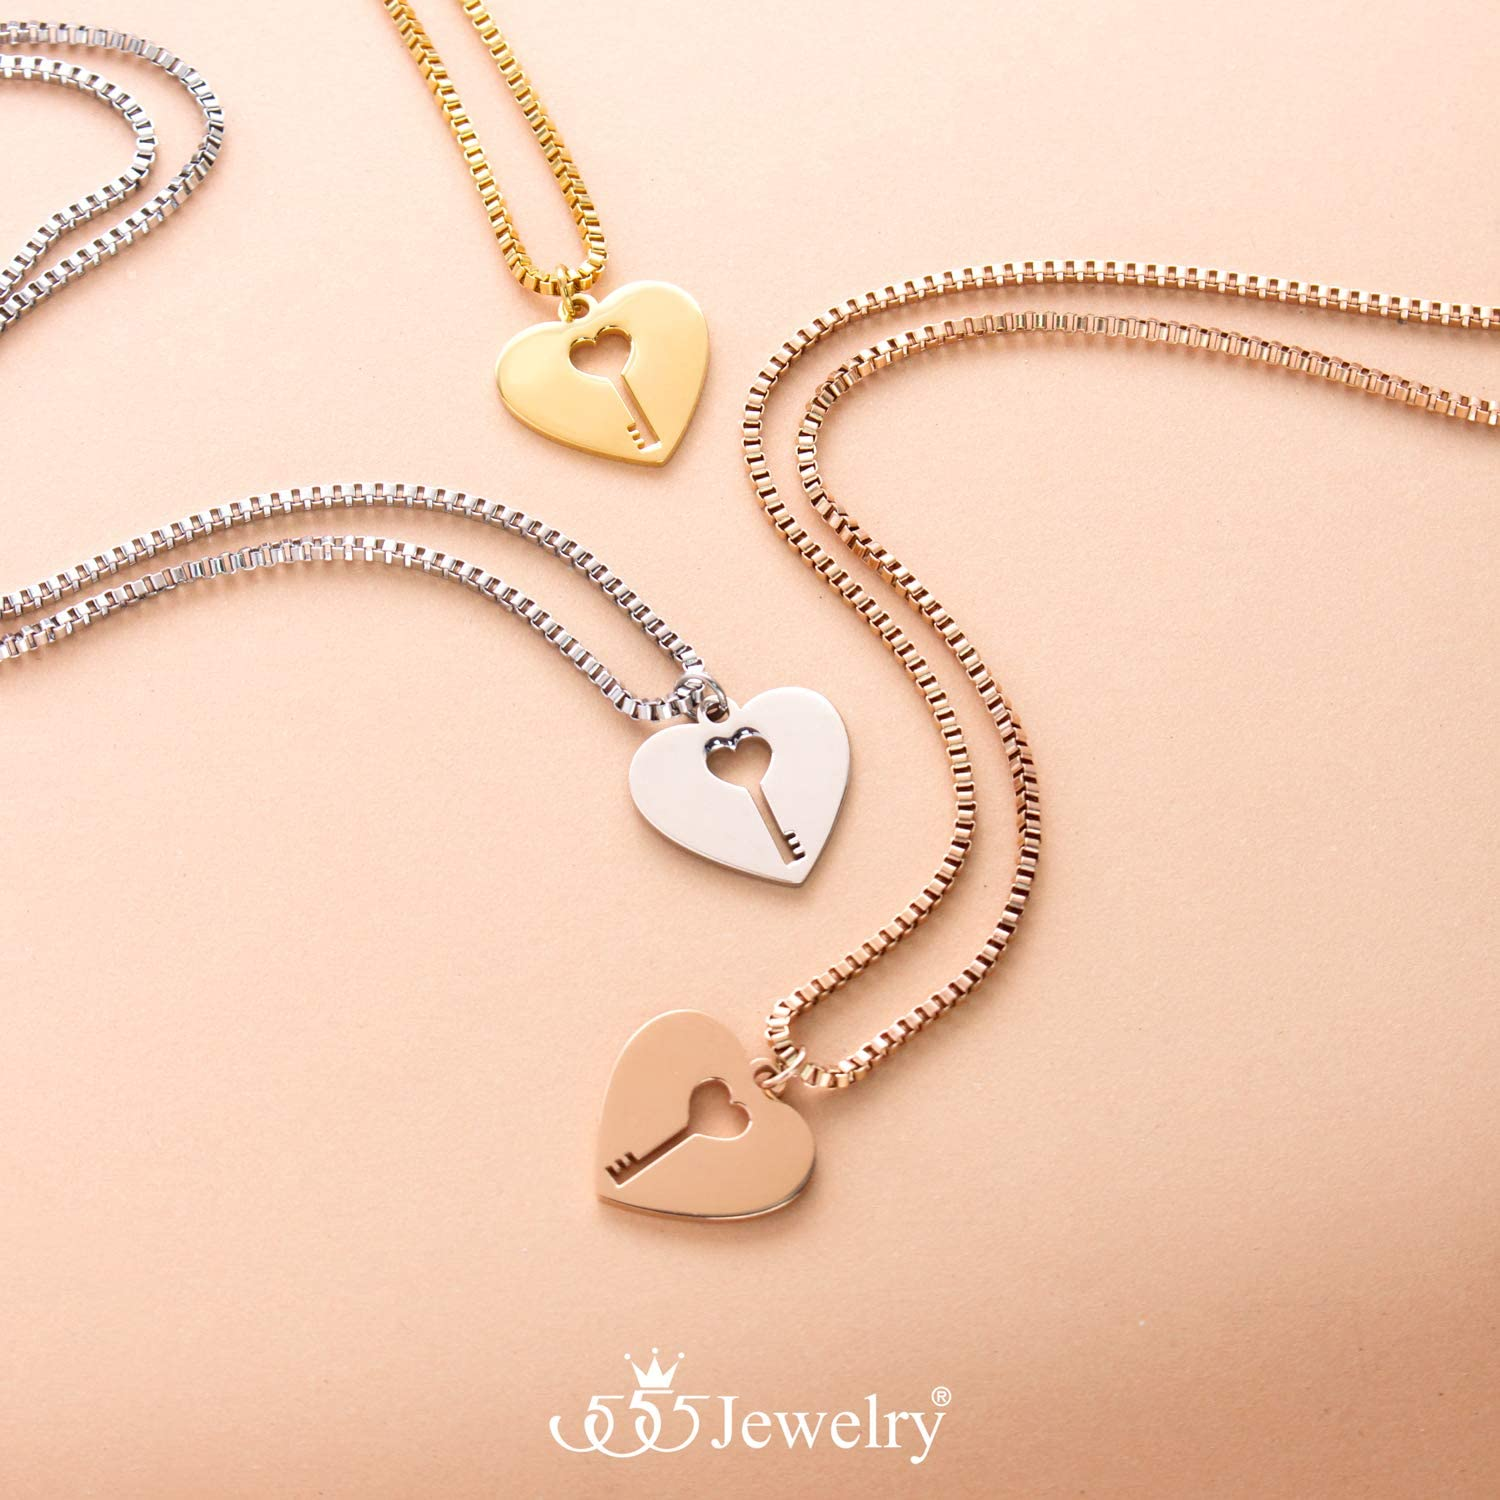 555Jewelry 2mm Delicate Rhodium Plated Brass Tiny Heart Necklace Chain for Women